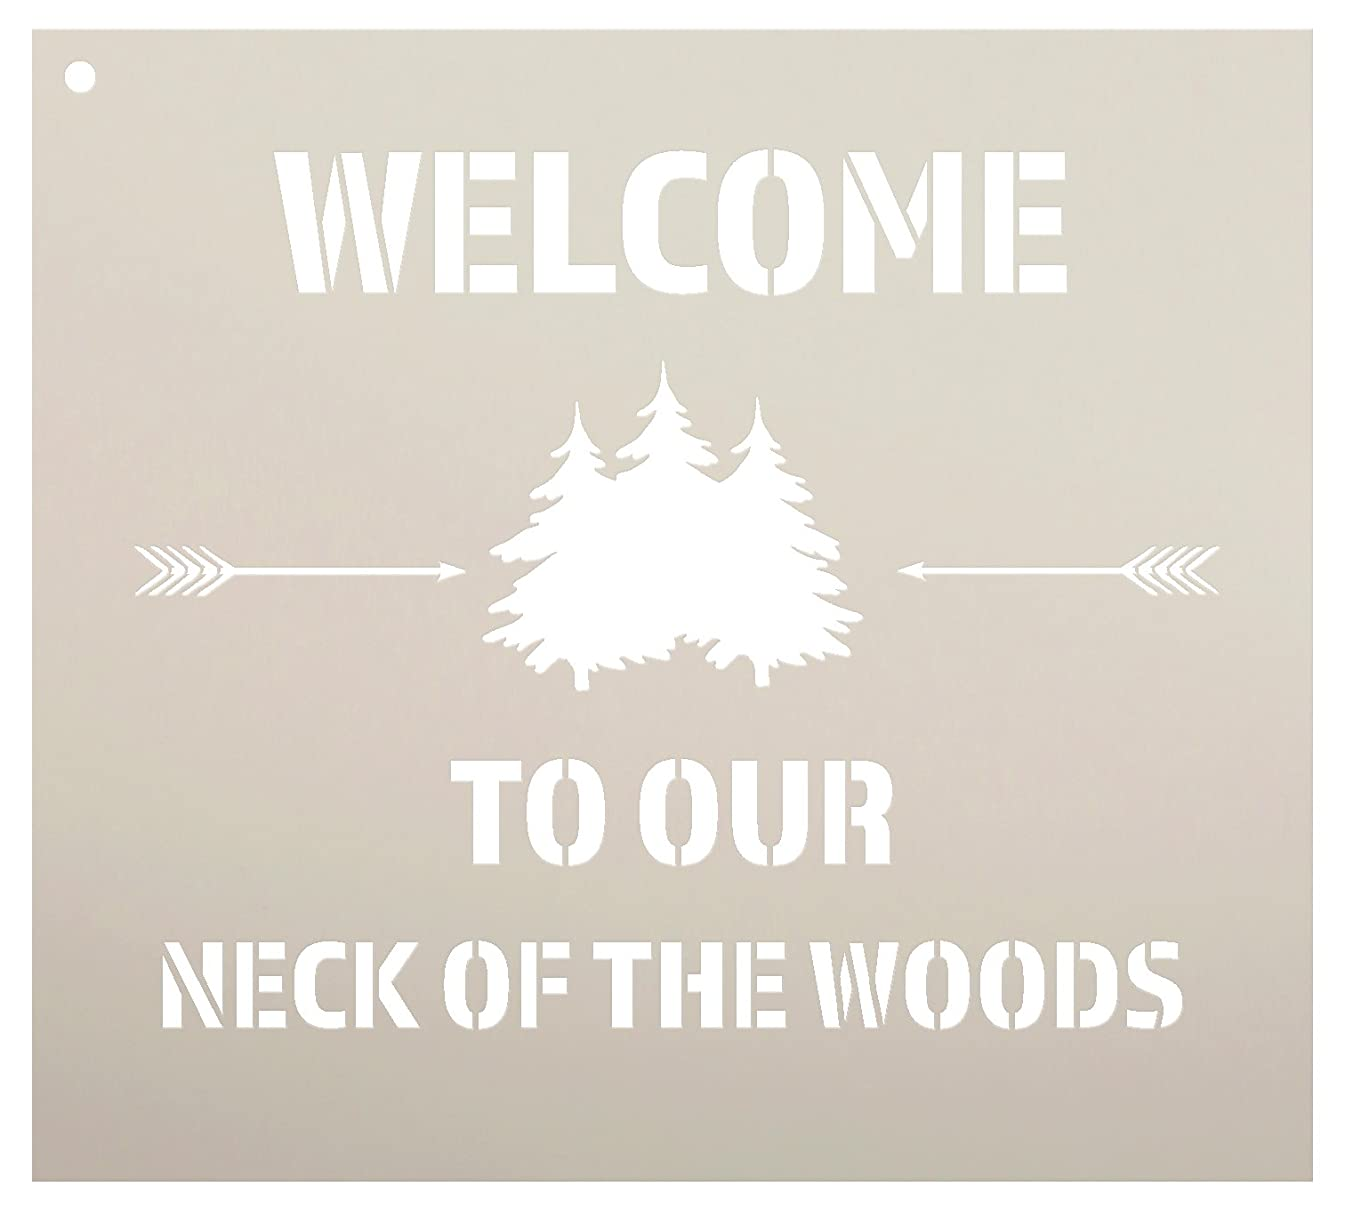 Welcome to Our Neck of The Woods - Trees & Arrows Stencil by StudioR12 | Reusable Mylar Template | Use to Paint Wood Signs | DIY Country Decor - Select Size (10